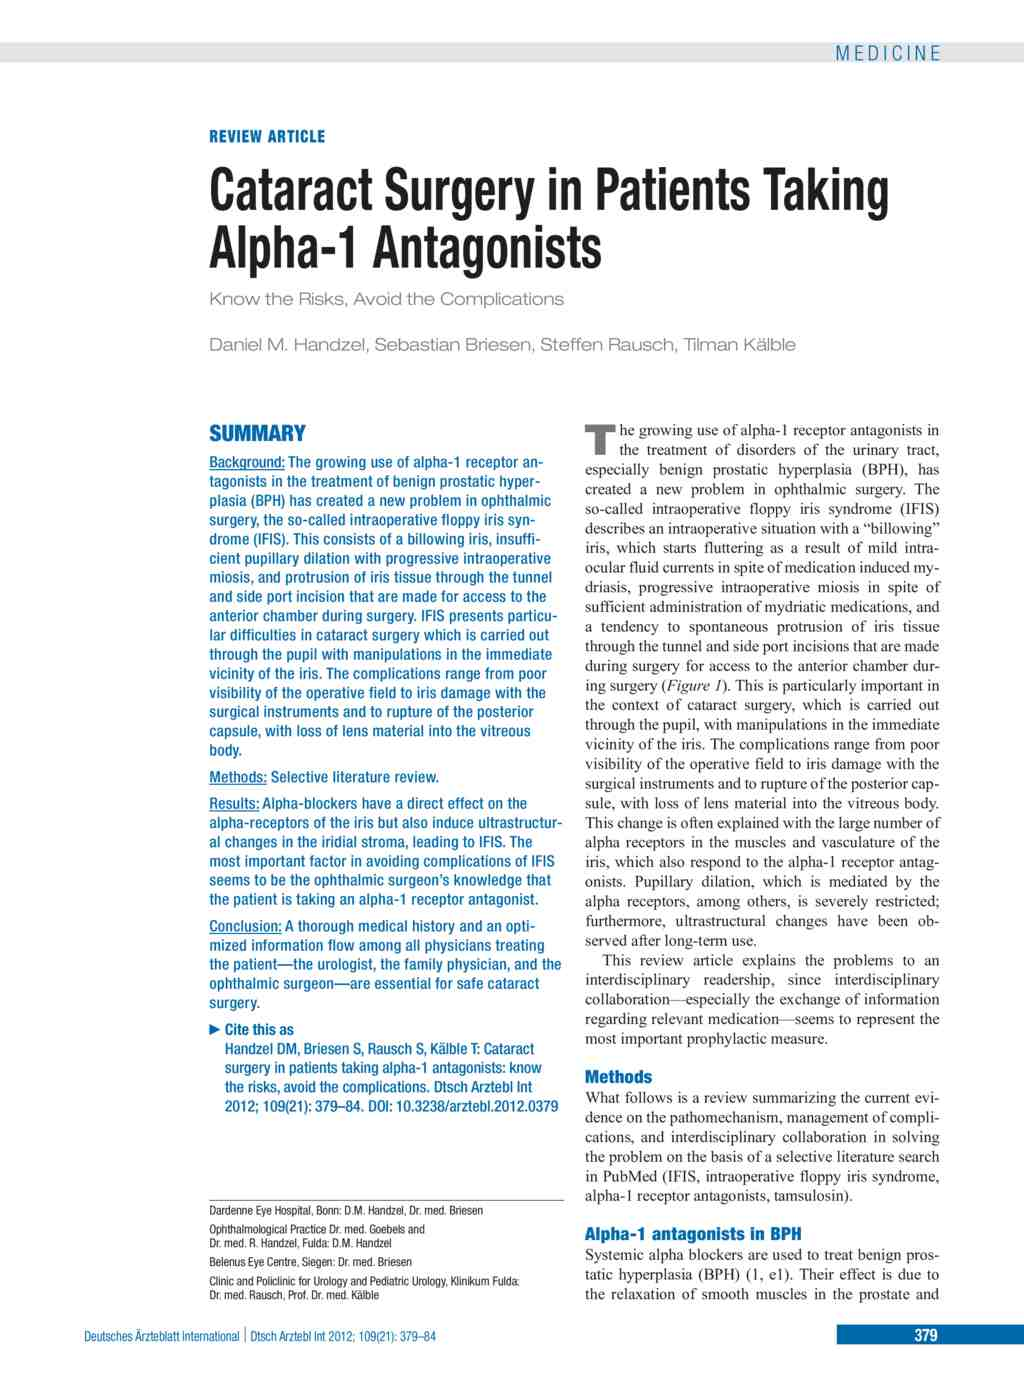 Cataract Surgery In Patients Taking Alpha 1 Antagonists 25052012